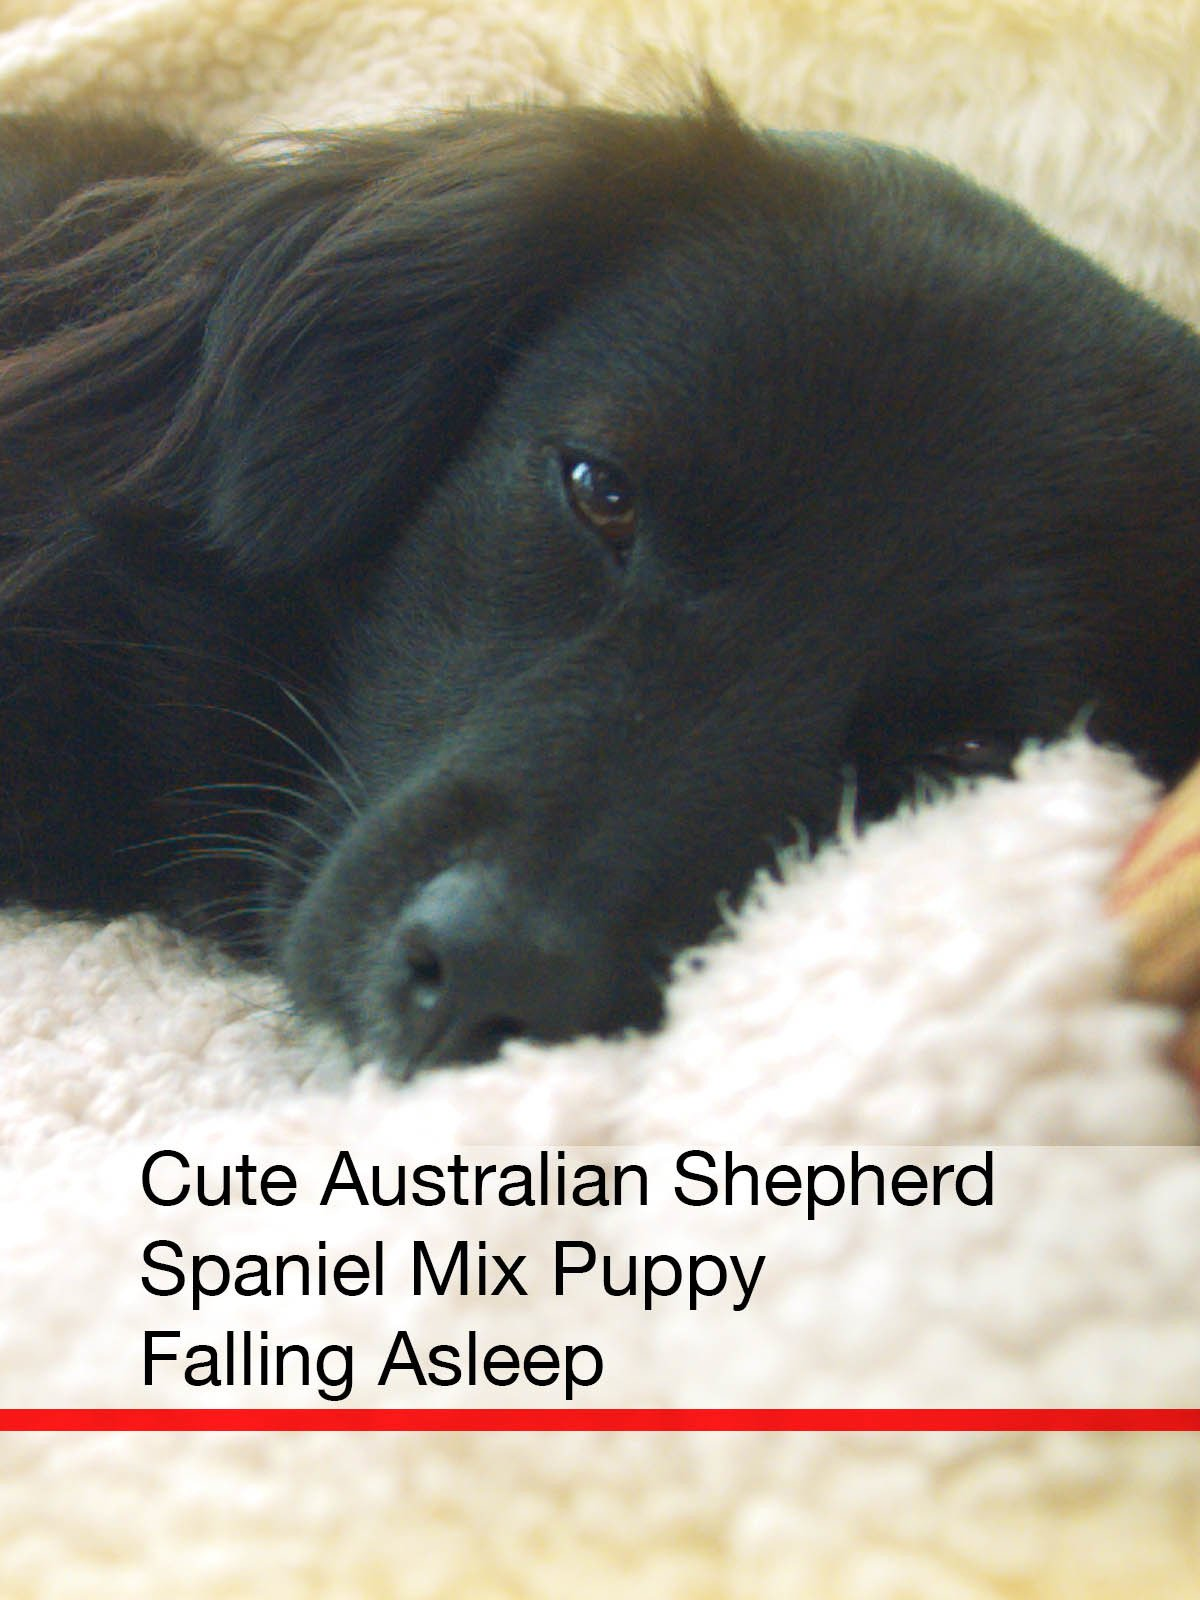 Clip: Cute Australian Shepherd Spaniel Mix Puppy Falling Asleep